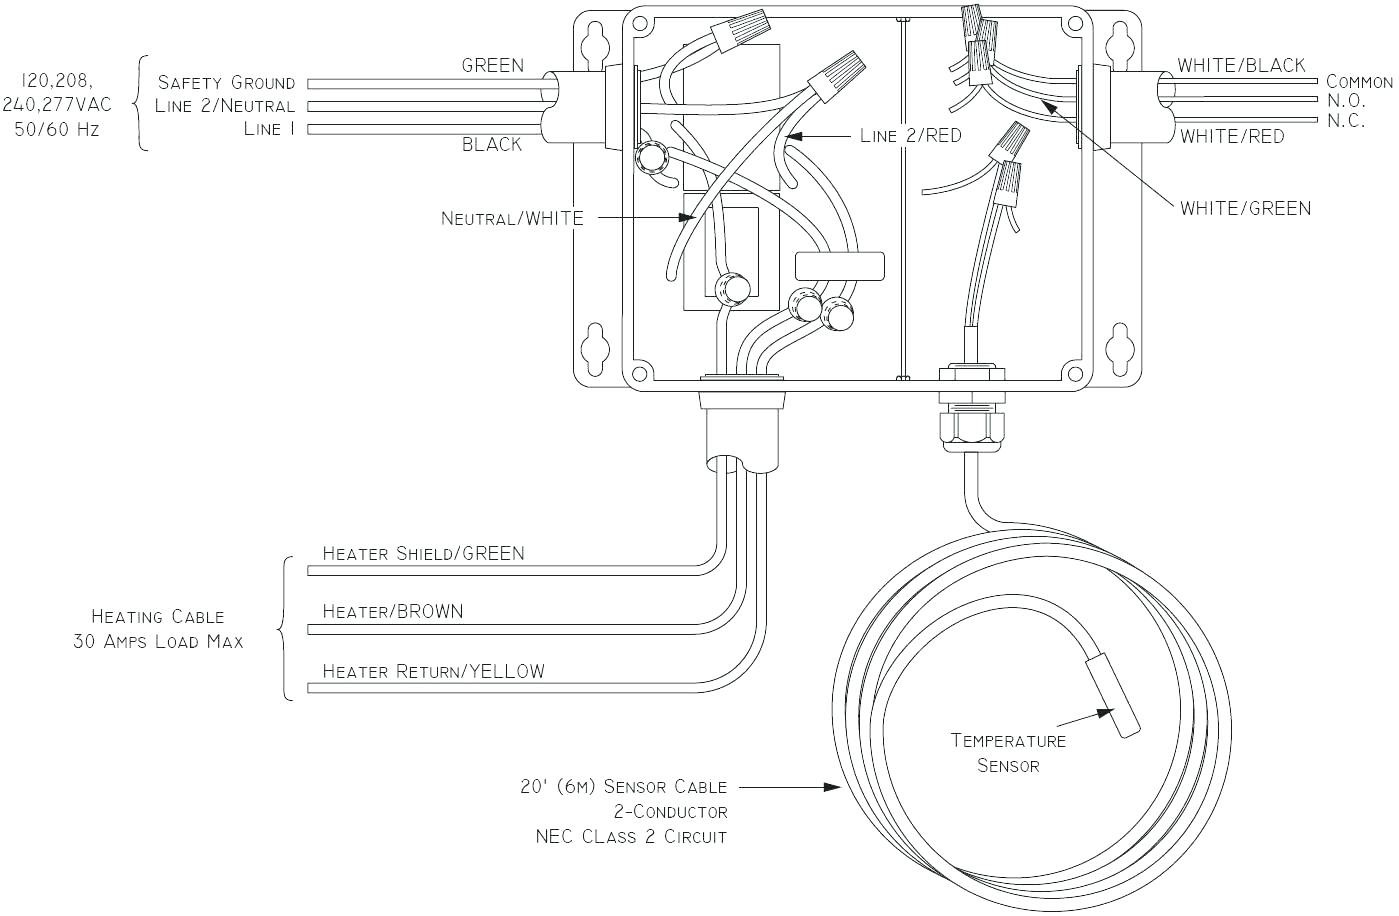 34 Wiring Diagram For Honeywell Thermostat